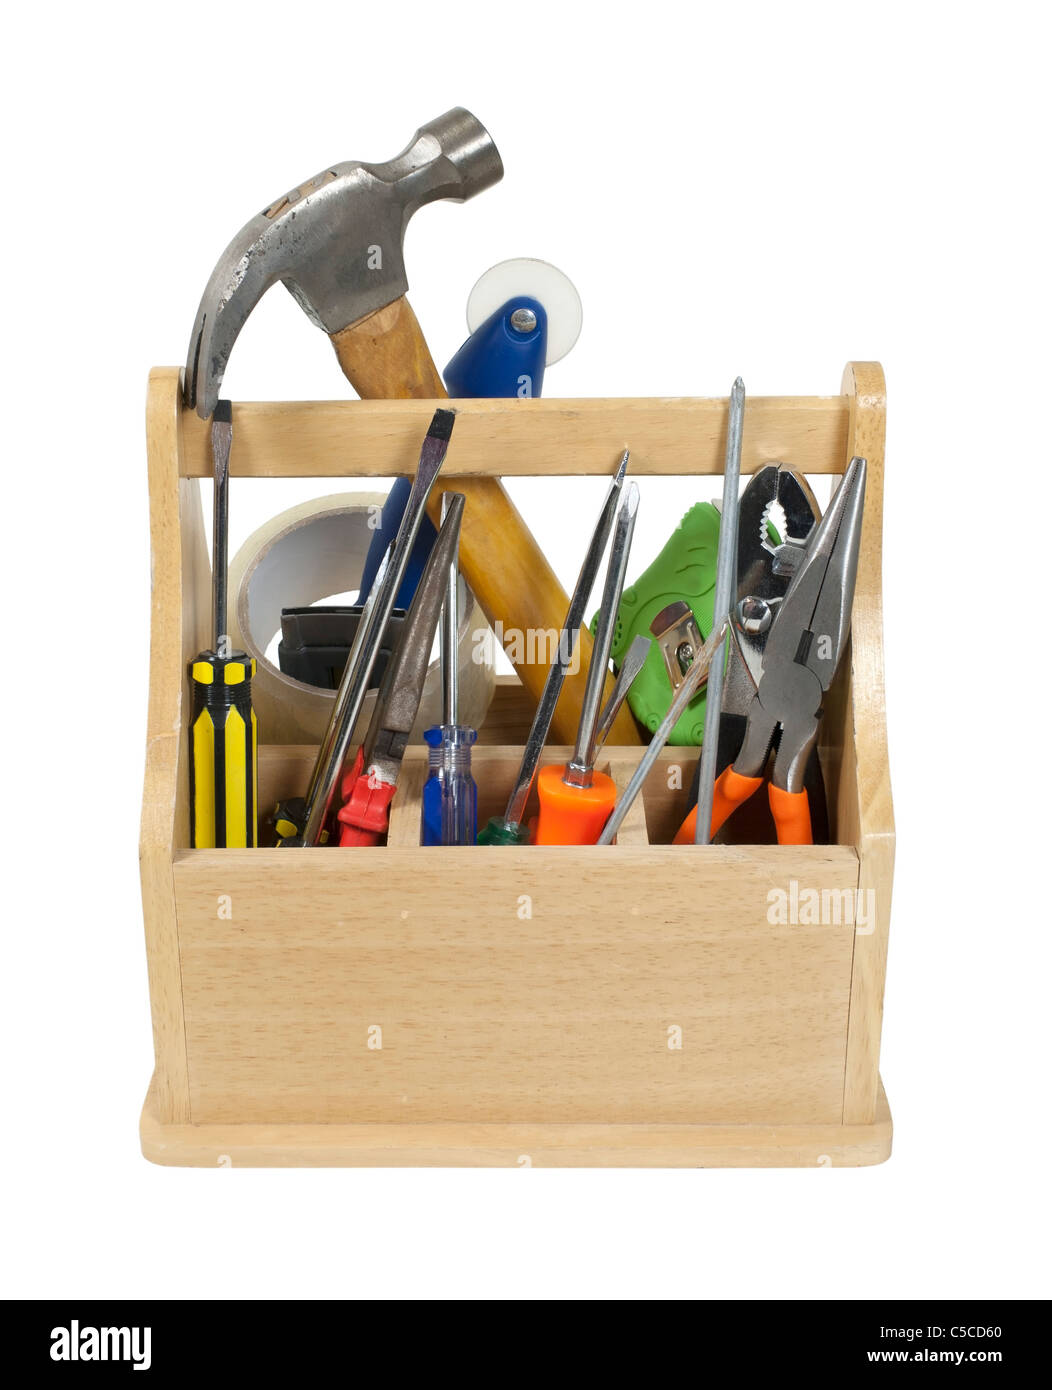 Sturdy wooden toobox filled with tools ready to be used - path included - Stock Image